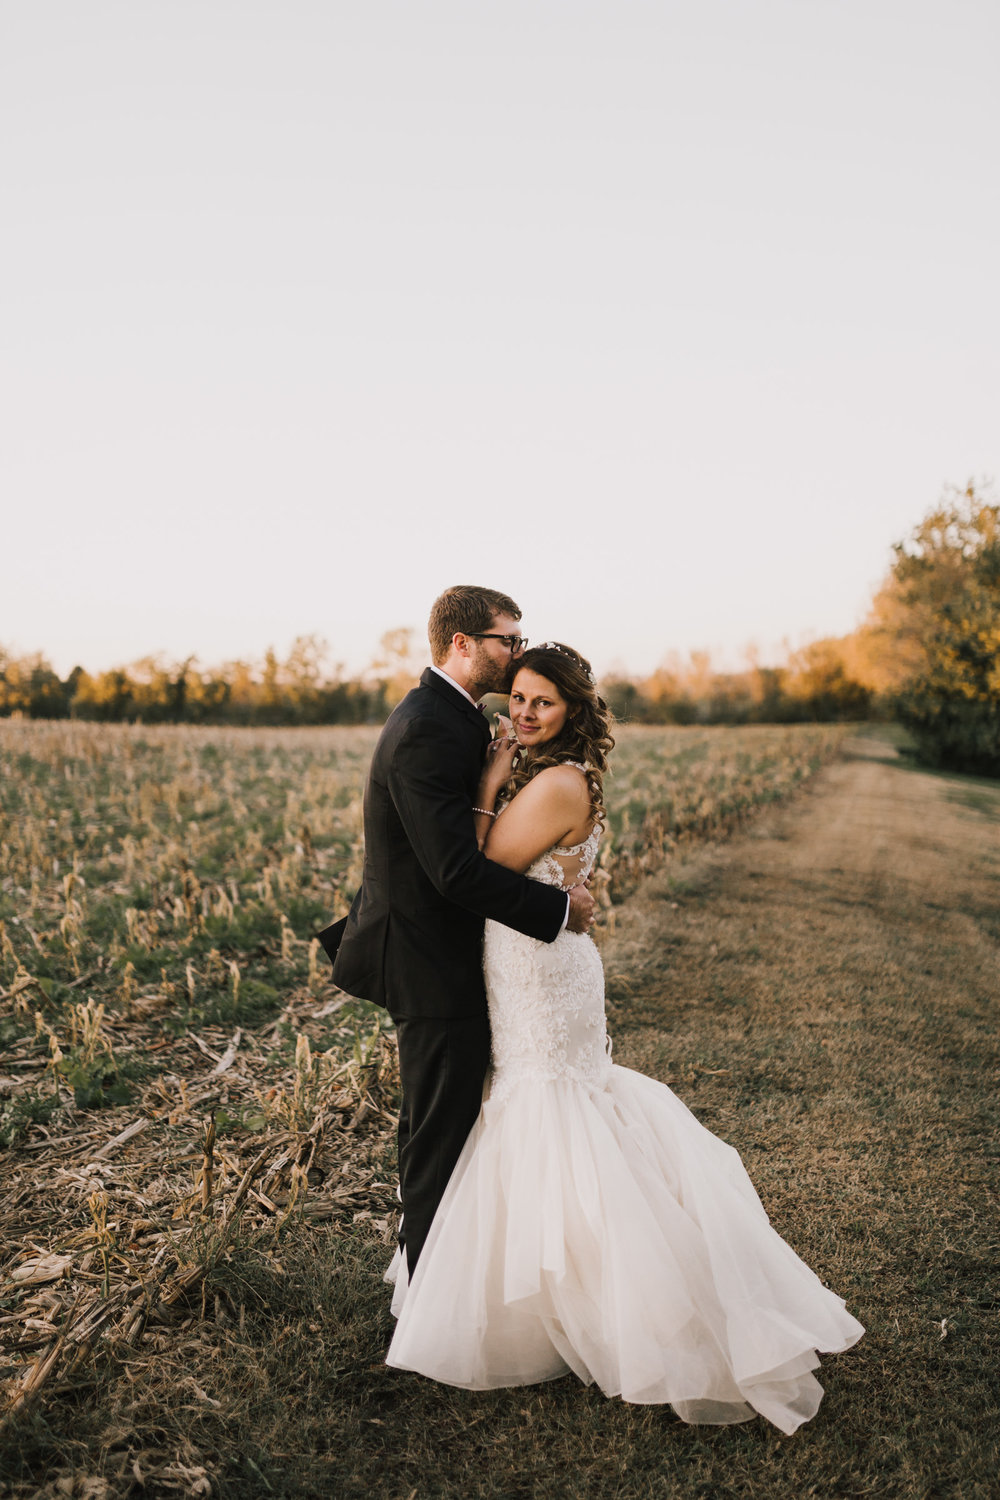 alyssa barletter photography intimate fall autumn wedding rural missouri wedding photographer-39.jpg